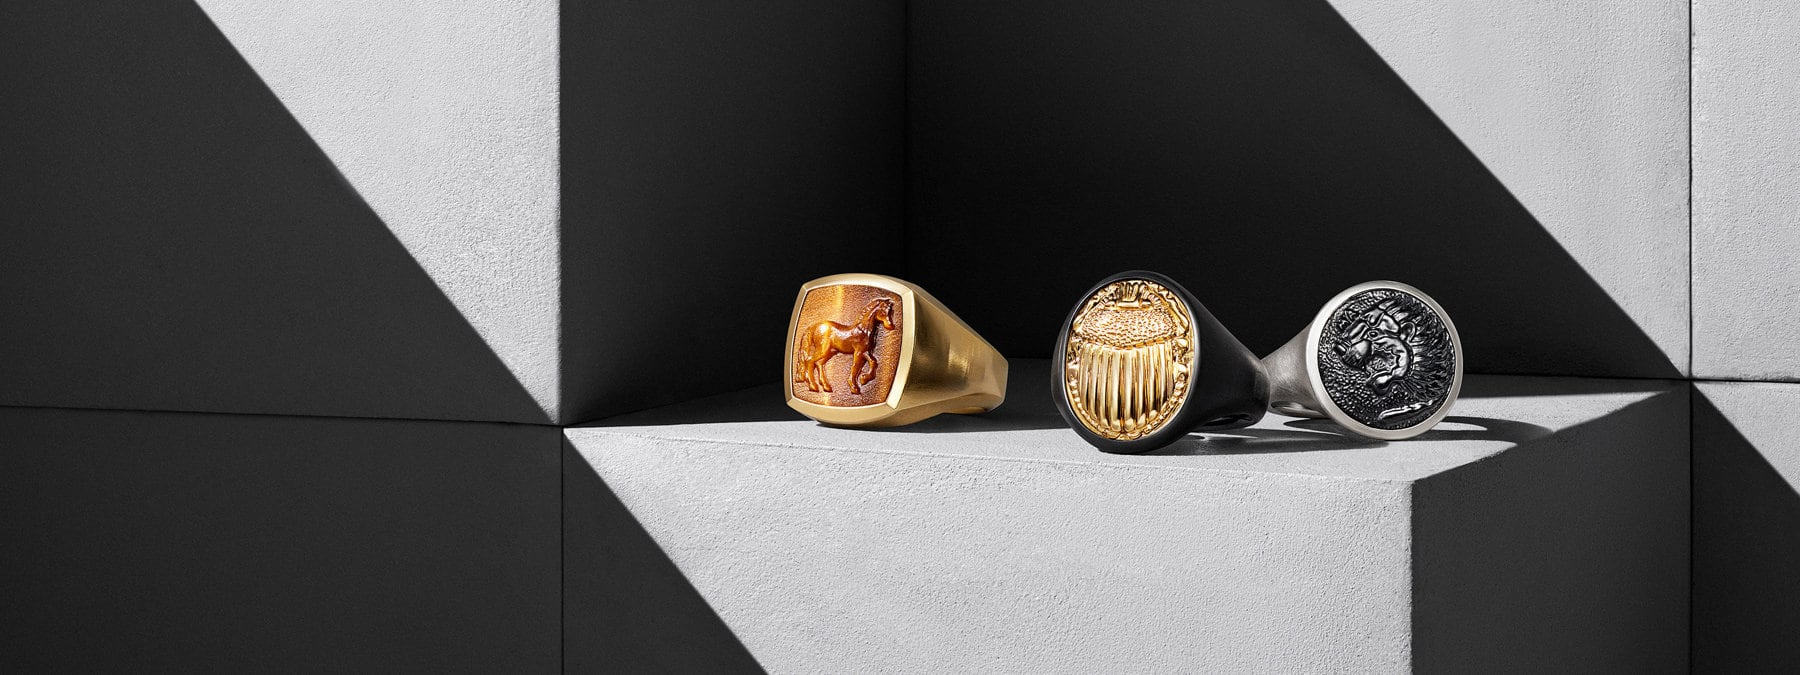 A color photograph shows three David Yurman men's signet rings from the Petrvs collection in a row atop grey concrete cubes with graphic shadows. One ring features a horse motif and is crafted from 18K yellow gold with tiger's eye. One ring features a scarab motif and is crafted from black titanium with 18K yellow gold. The final pinky ring features a lion motif and is crafted from sterling silver.